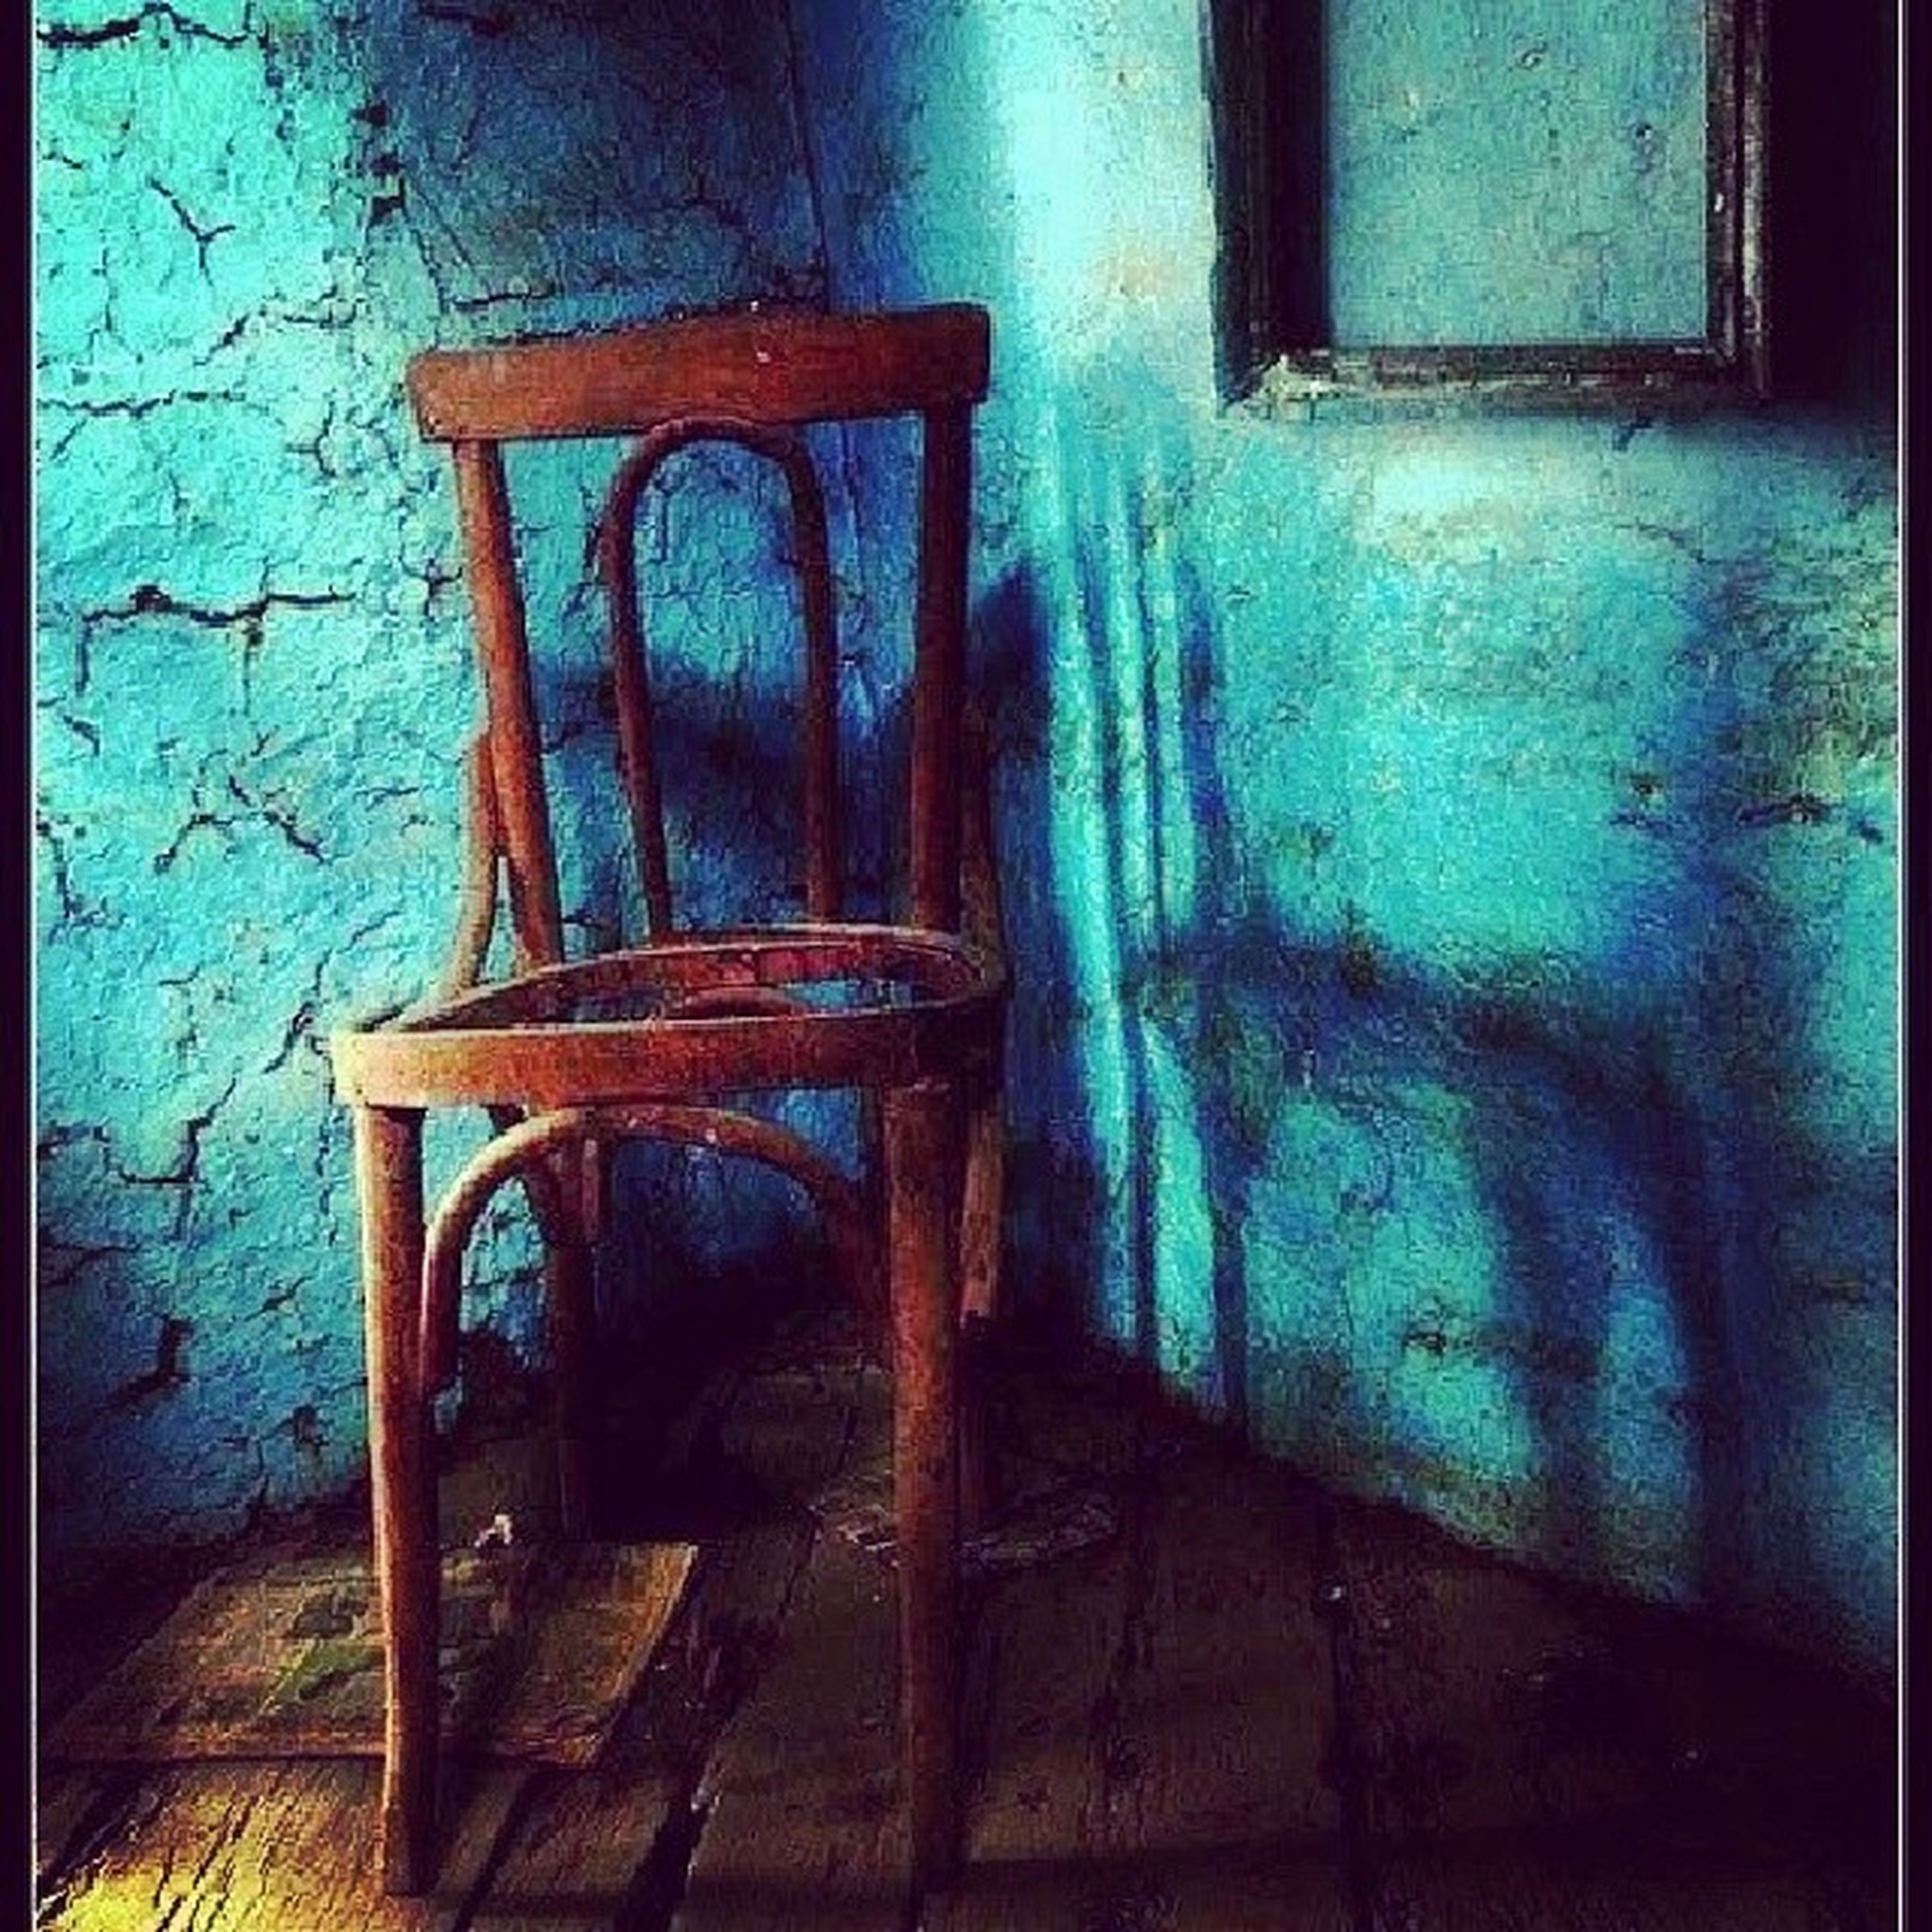 abandoned, indoors, old, absence, empty, chair, obsolete, damaged, weathered, built structure, wood - material, wall - building feature, run-down, house, deterioration, window, door, sunlight, architecture, wall